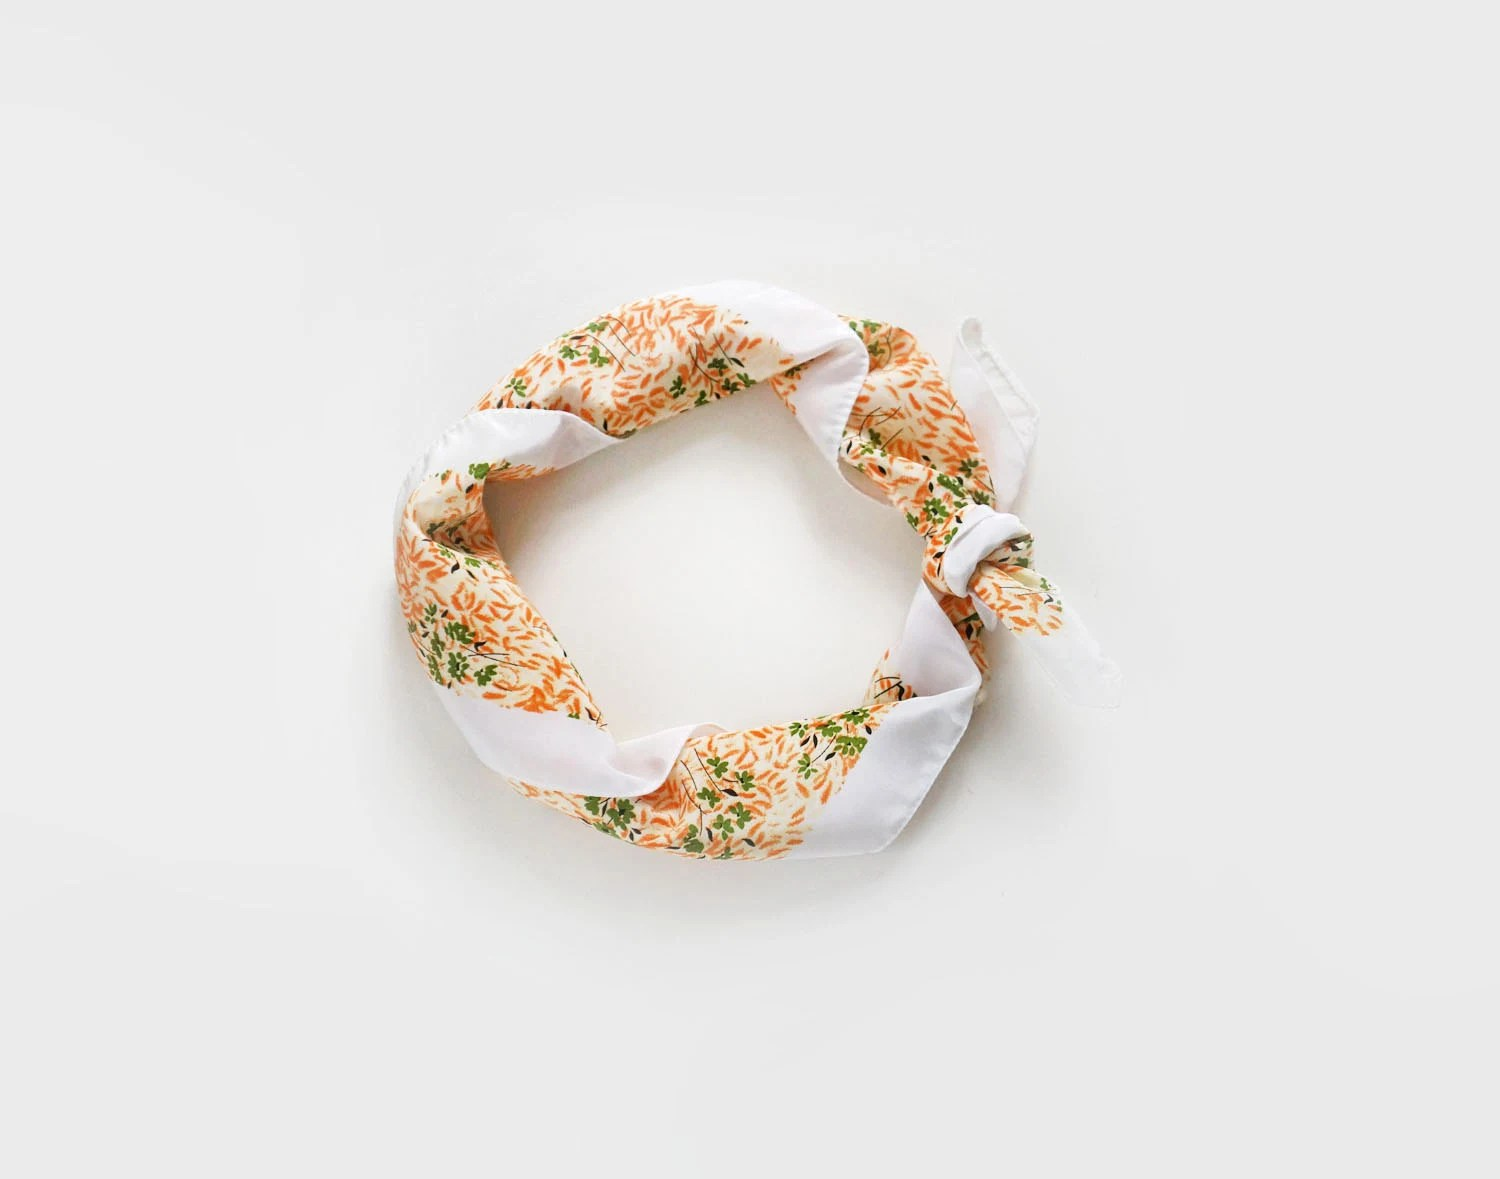 Vintage womens square scarf in peach orange, white and green, retro floral scarf - plot